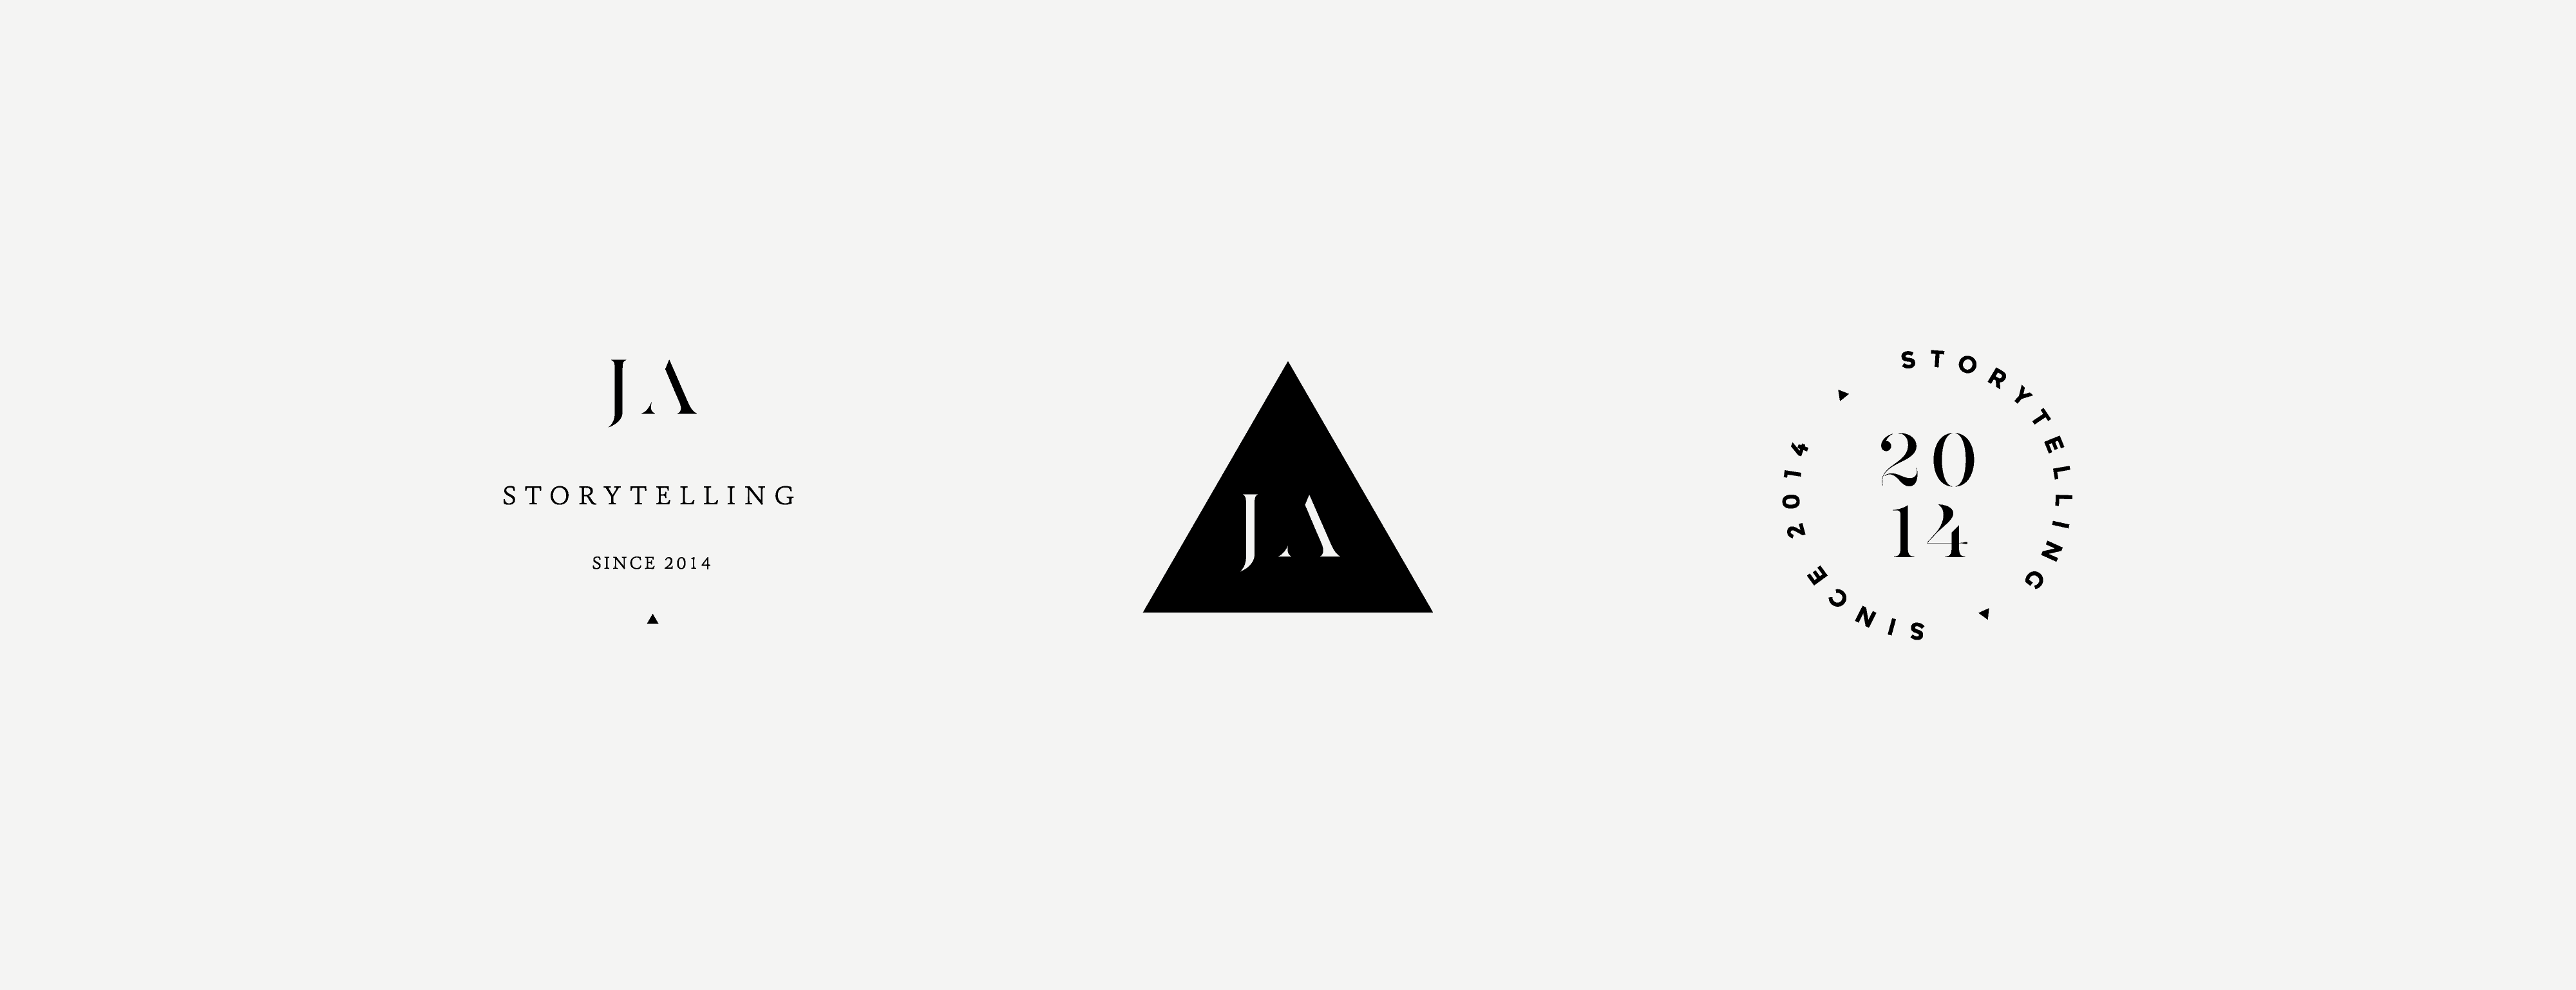 Mini Logos and Secondary Brand Marks for Photographer Jamie Allio's Brand Identity Design